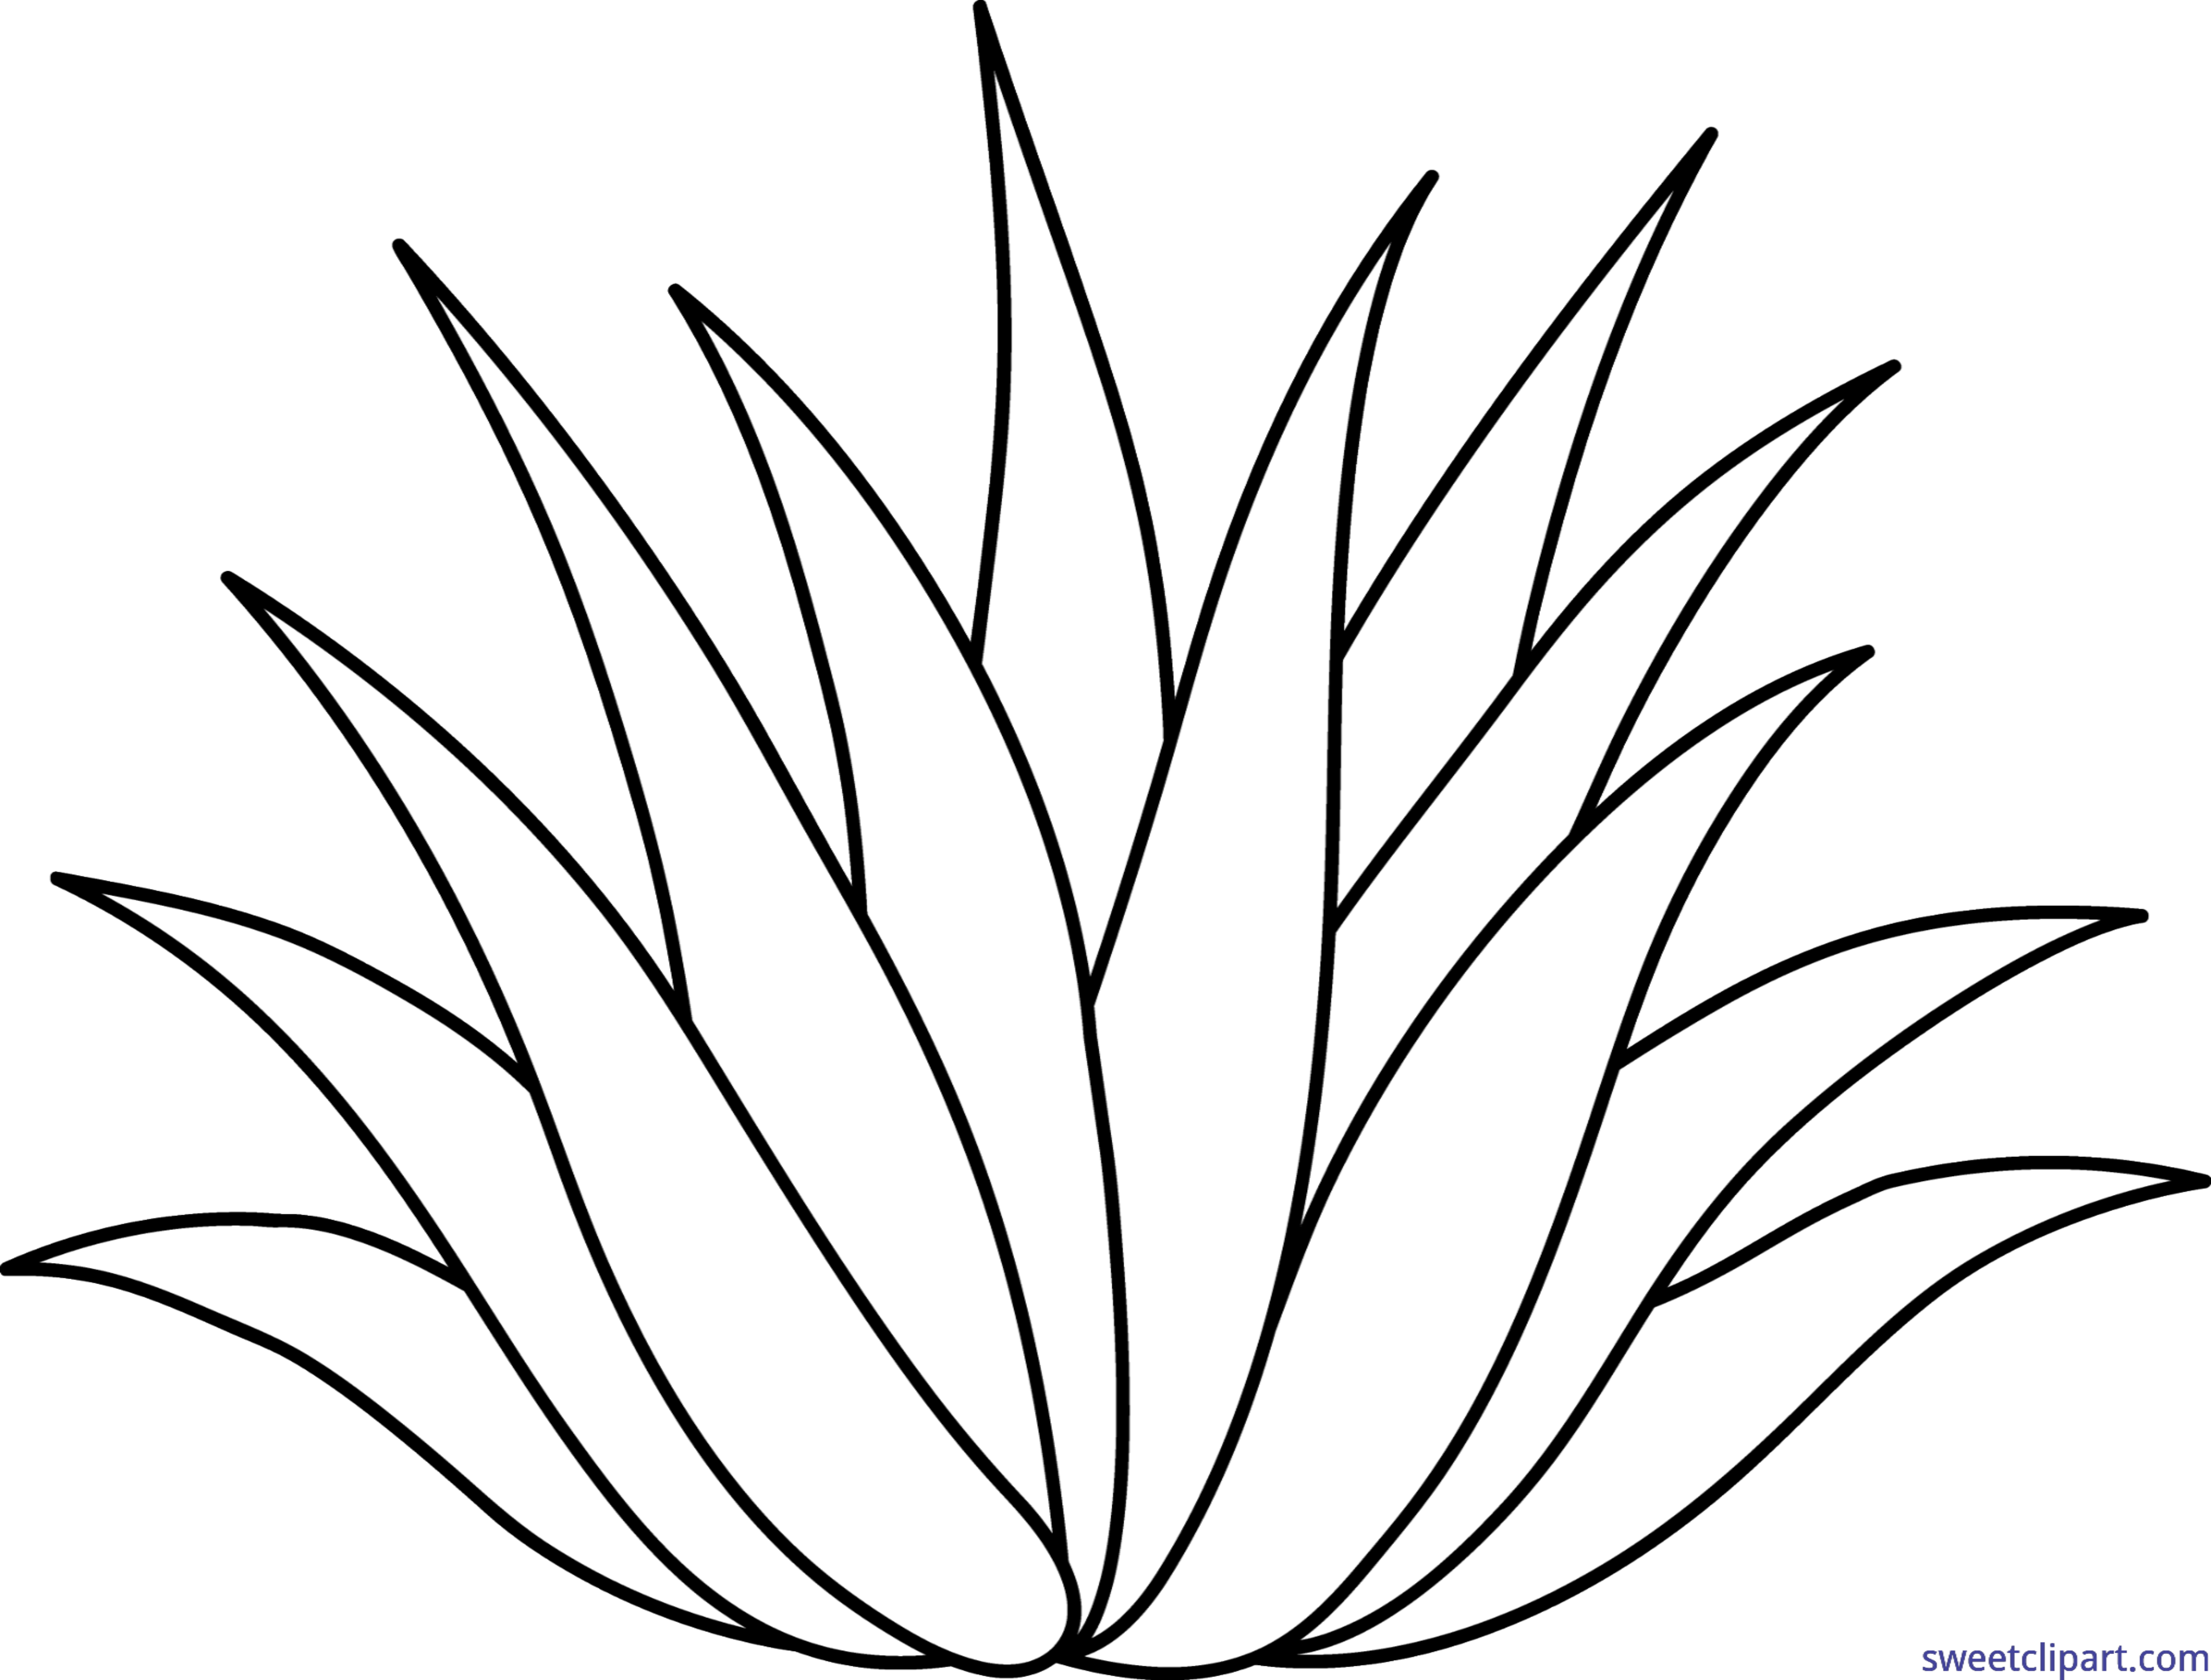 Agave clipart #1, Download drawings